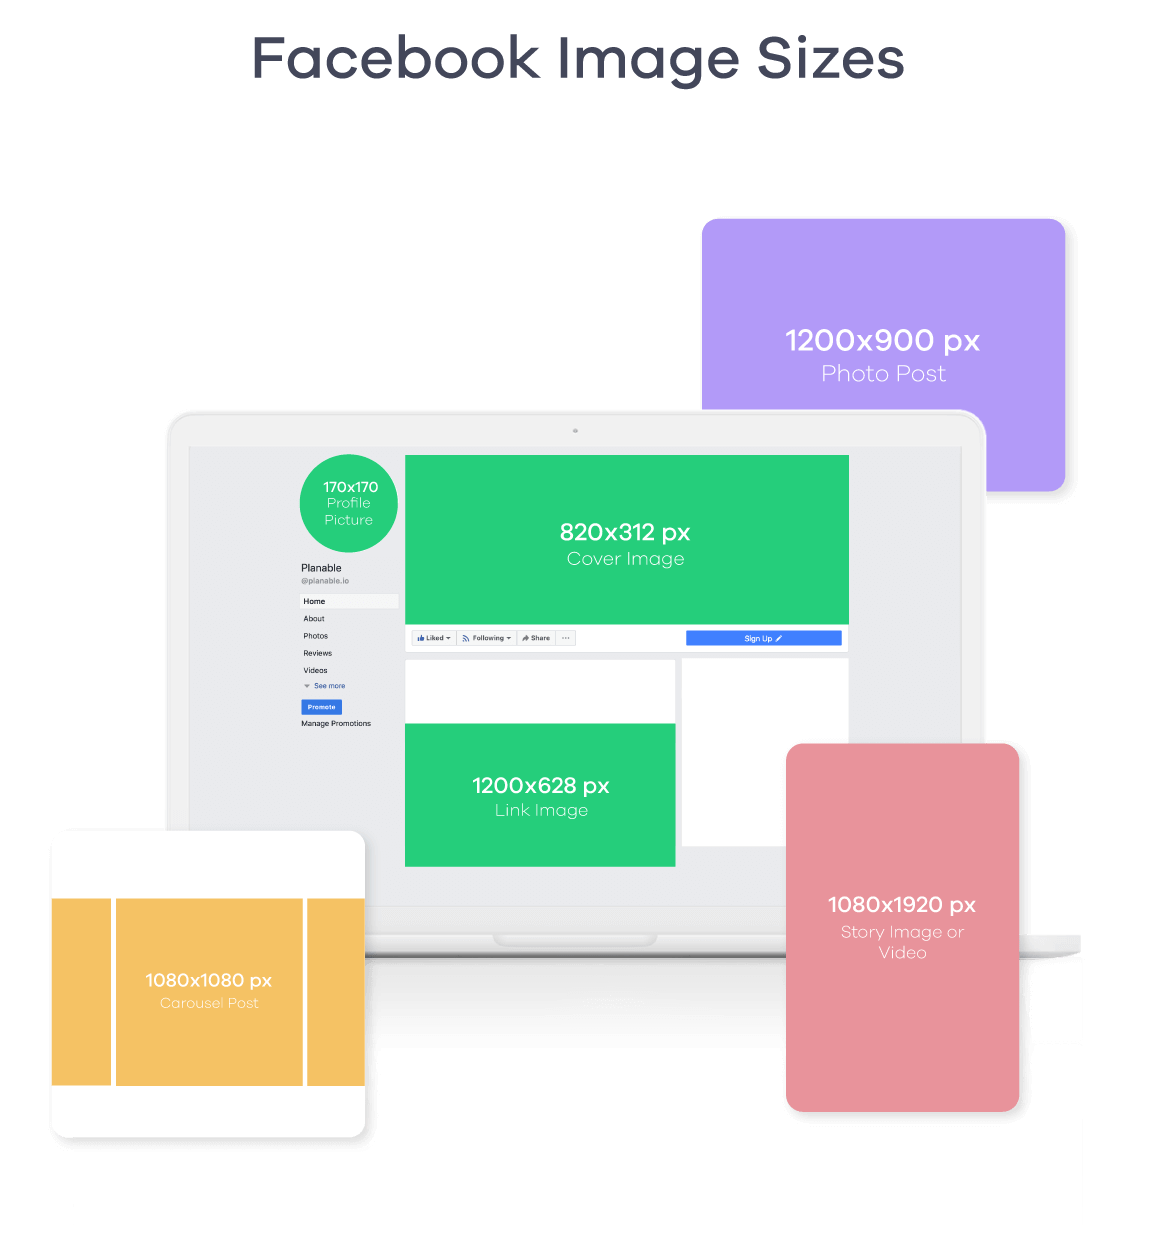 facebook image sizes 2019